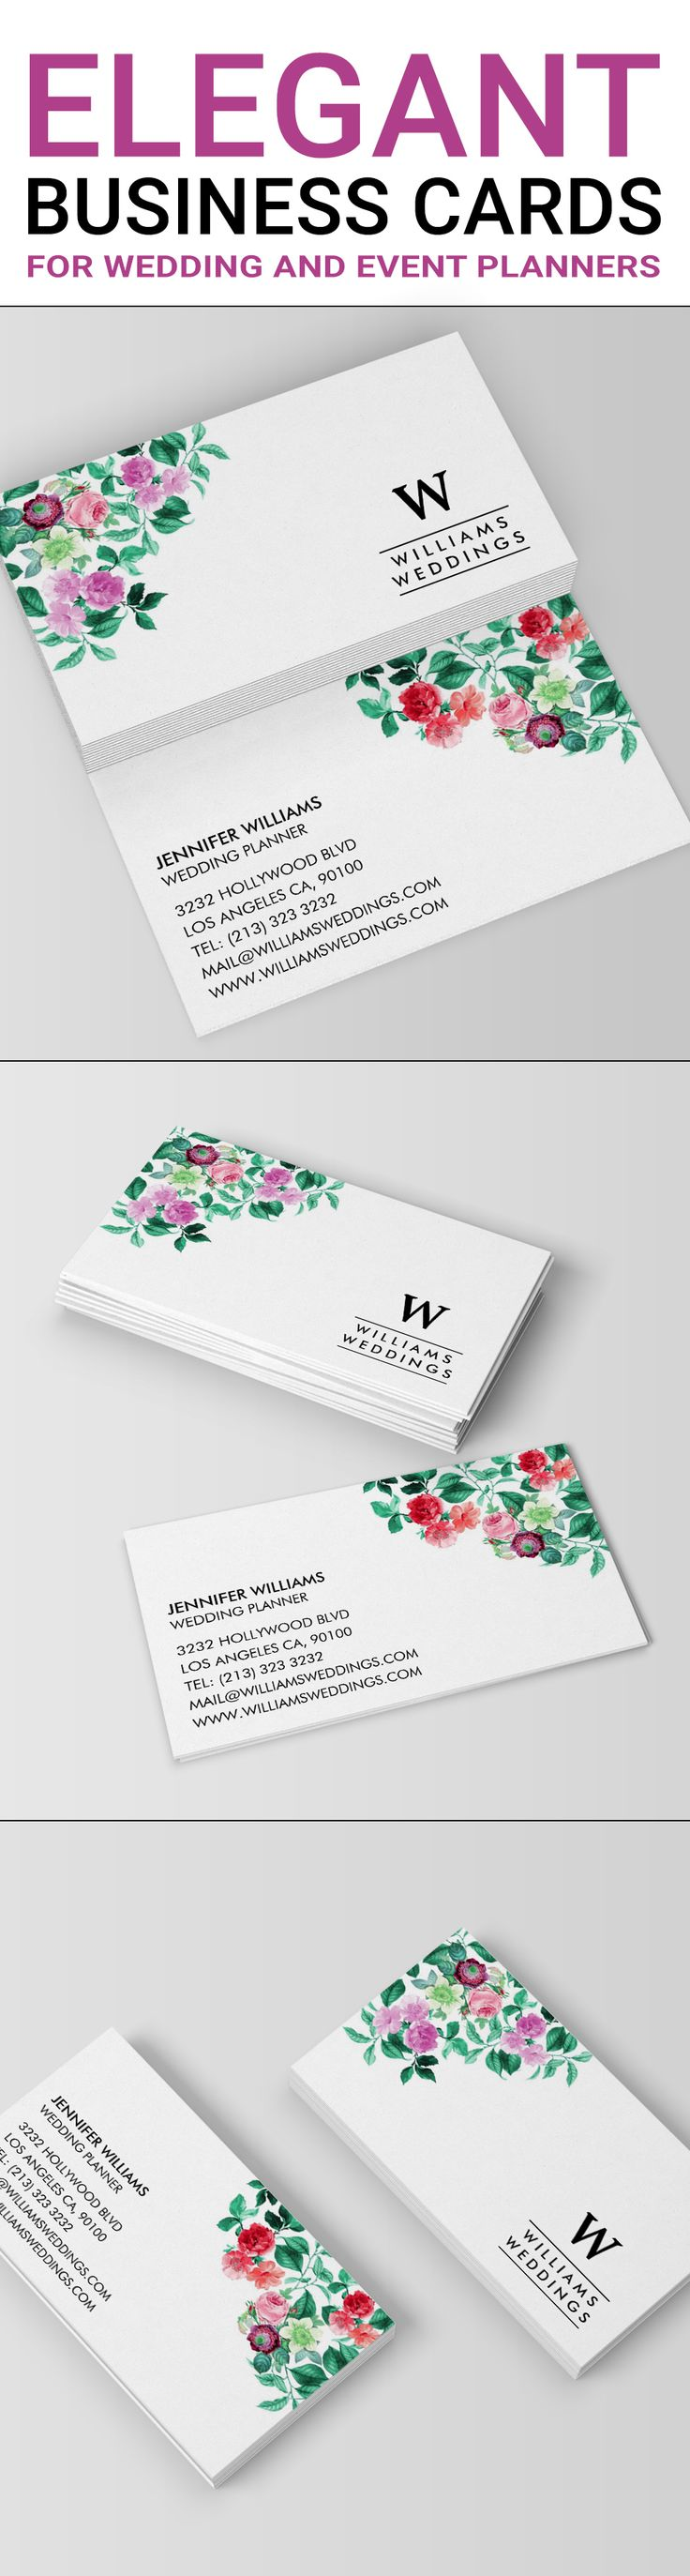 33 best business card ideas images on pinterest